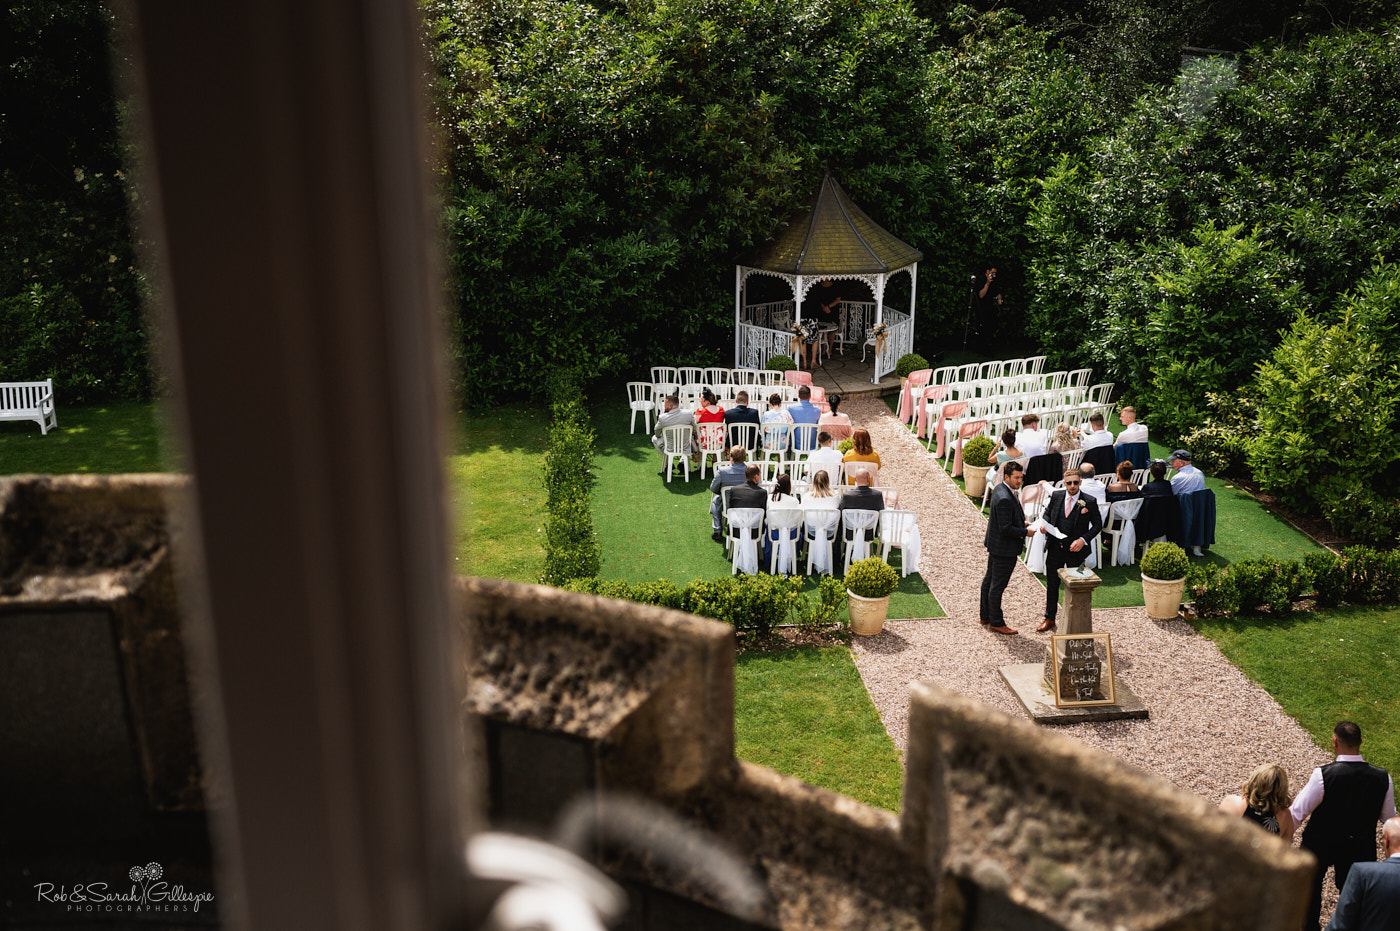 Guests arrive for outdoor wedding at Pendrell Hall